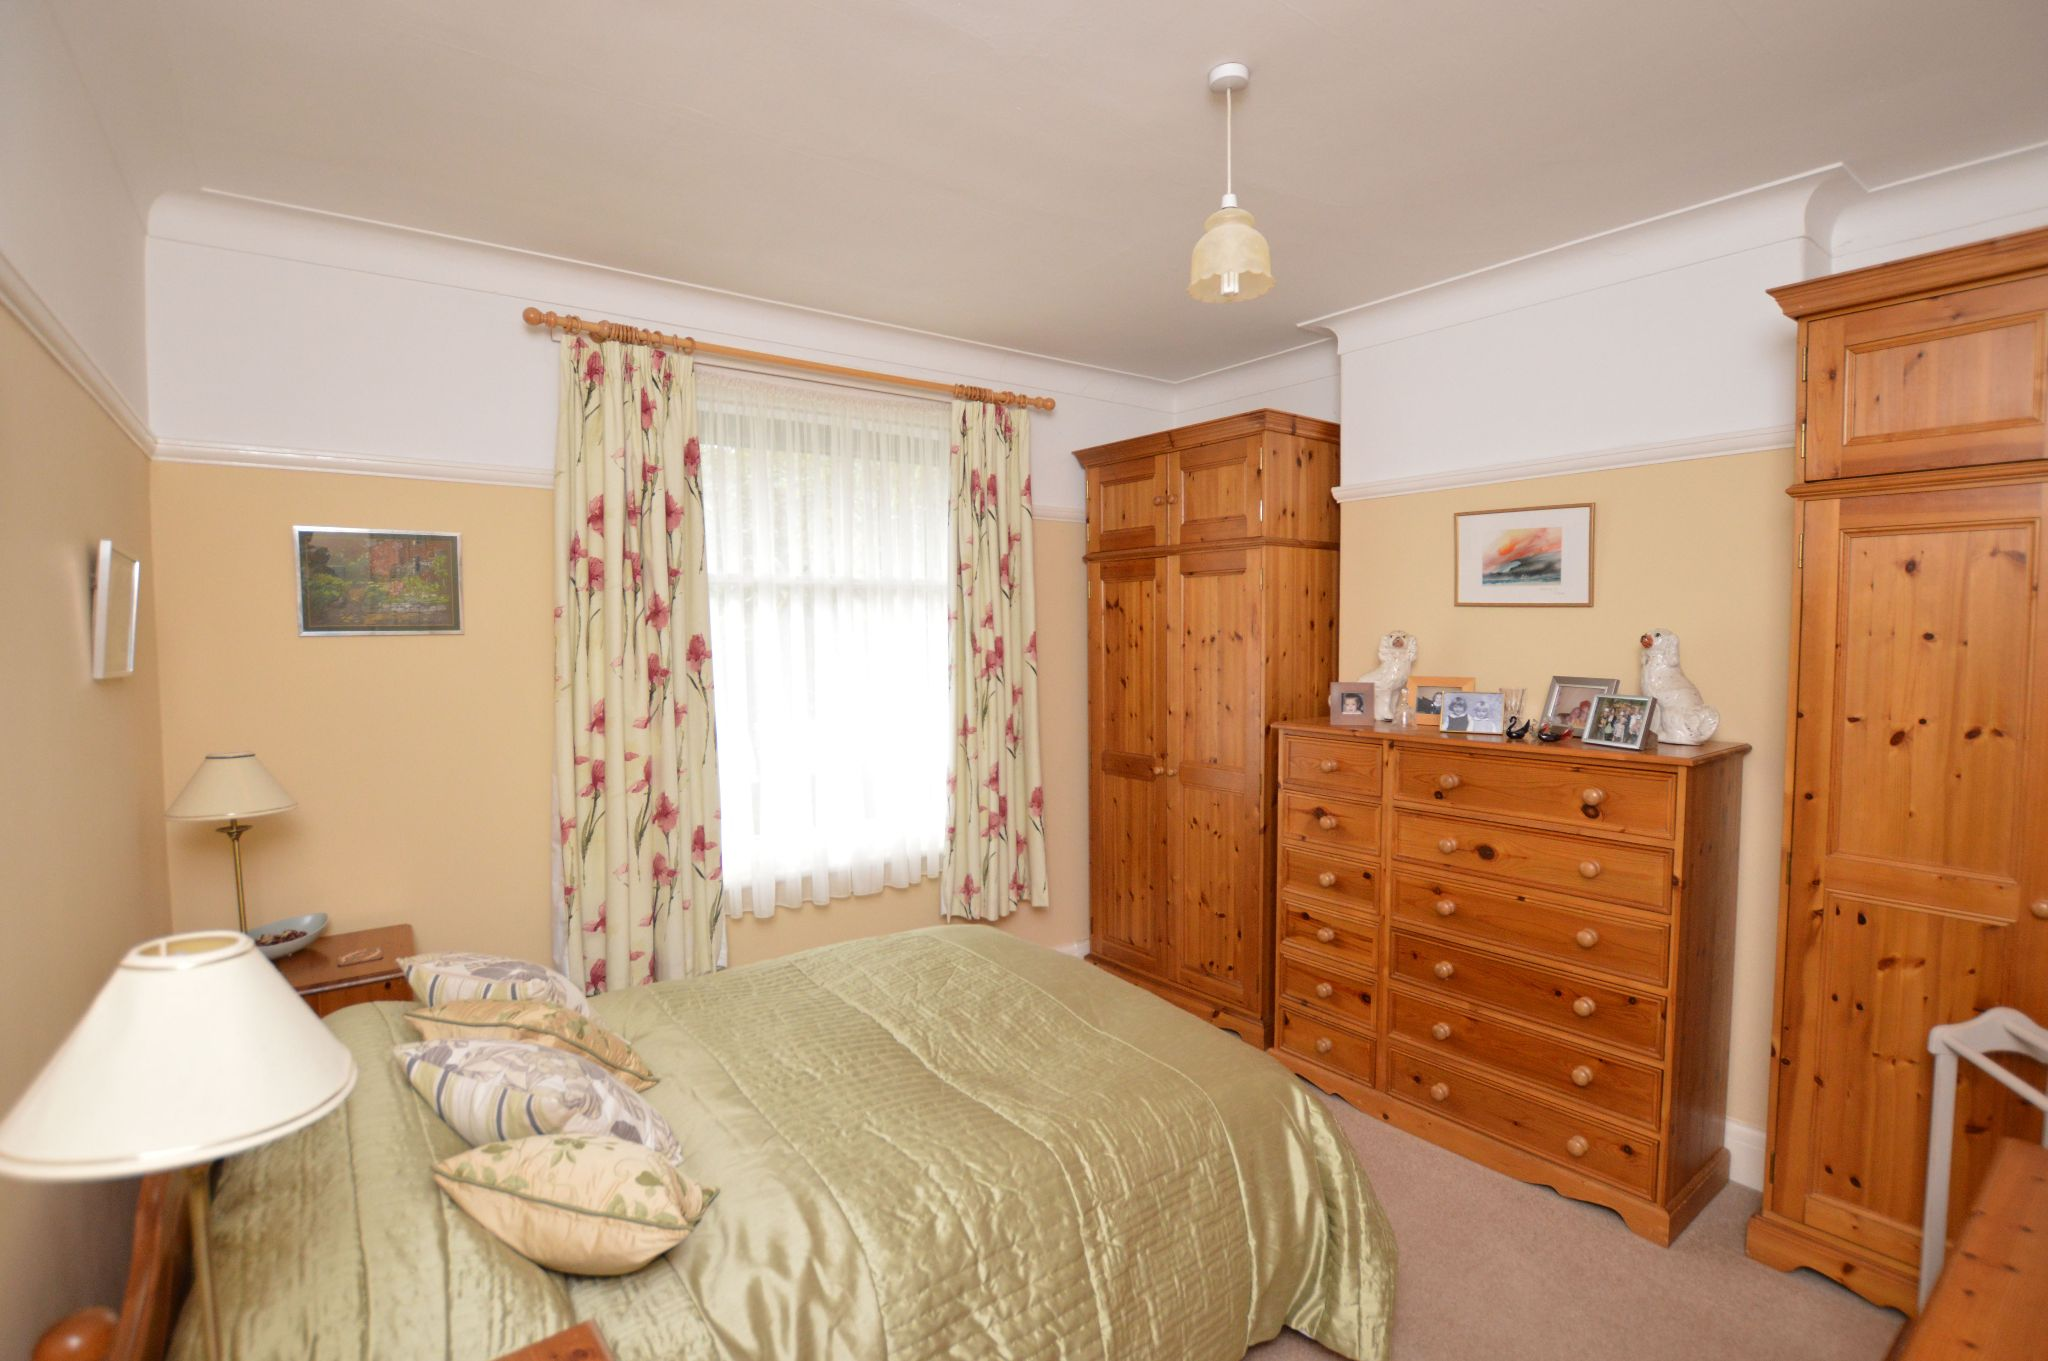 4 bedroom detached house For Sale in Abergele - Bedroom 3